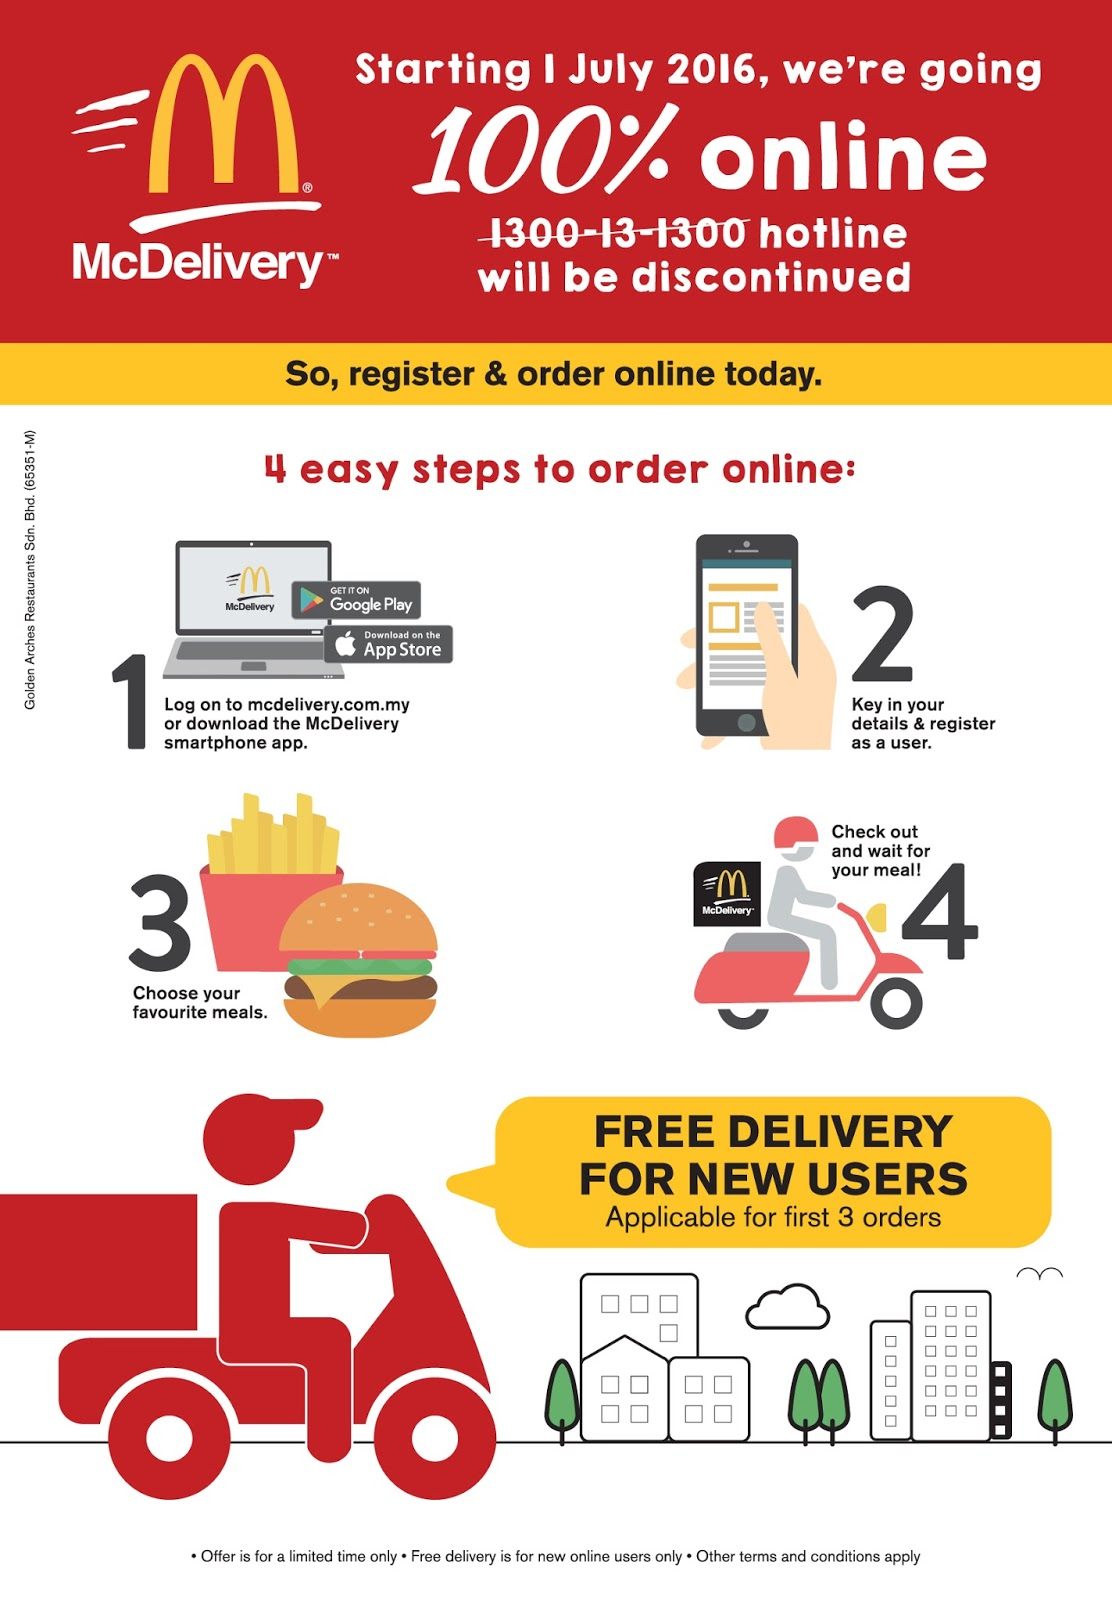 Satisfy your cravings and get your McDo favorites delivered from our store to your door with McDelivery!